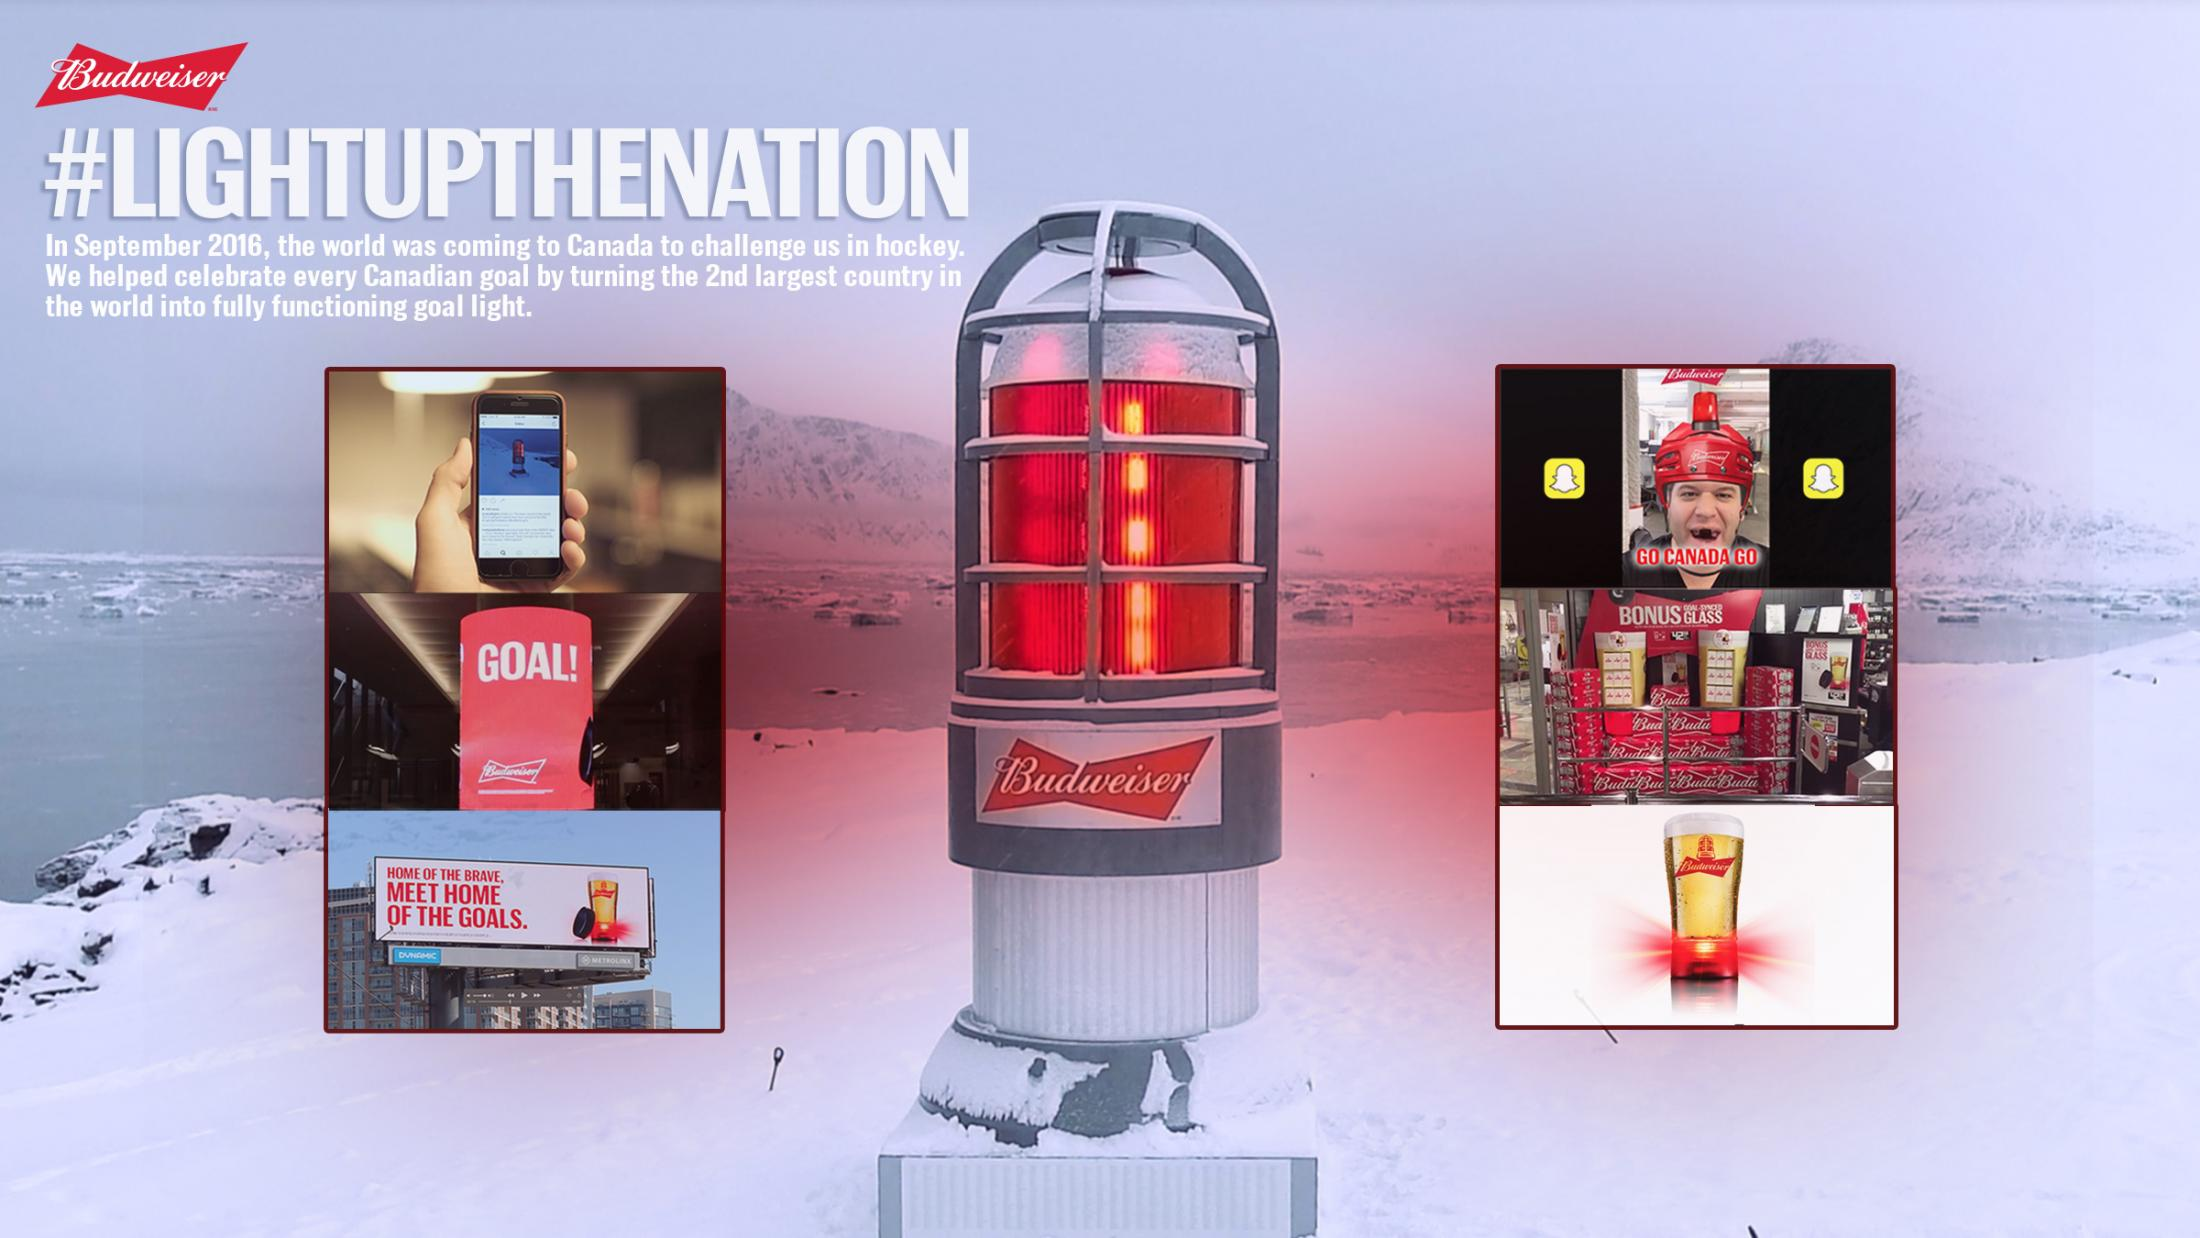 Thumbnail for Budweiser #LightUpTheNation